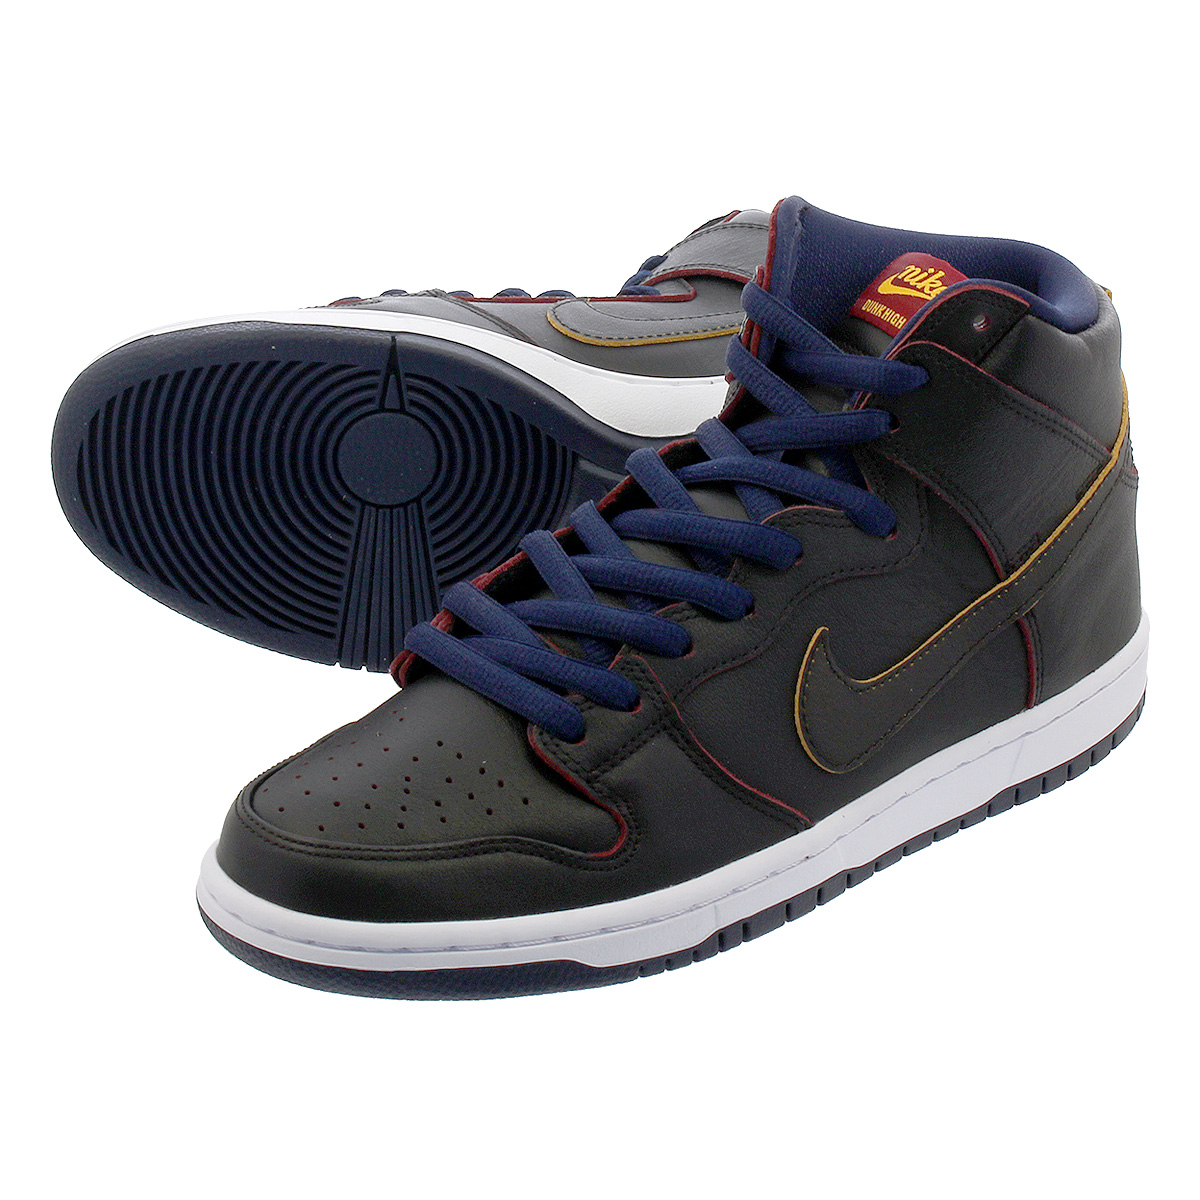 more photos d5b66 d1300 NIKE SB ZOOM DUNK HIGH PRO NBA Nike SB dunk high professional NBA  BLACK/COLLEGE NAVY/TEAM RED bq6392-001